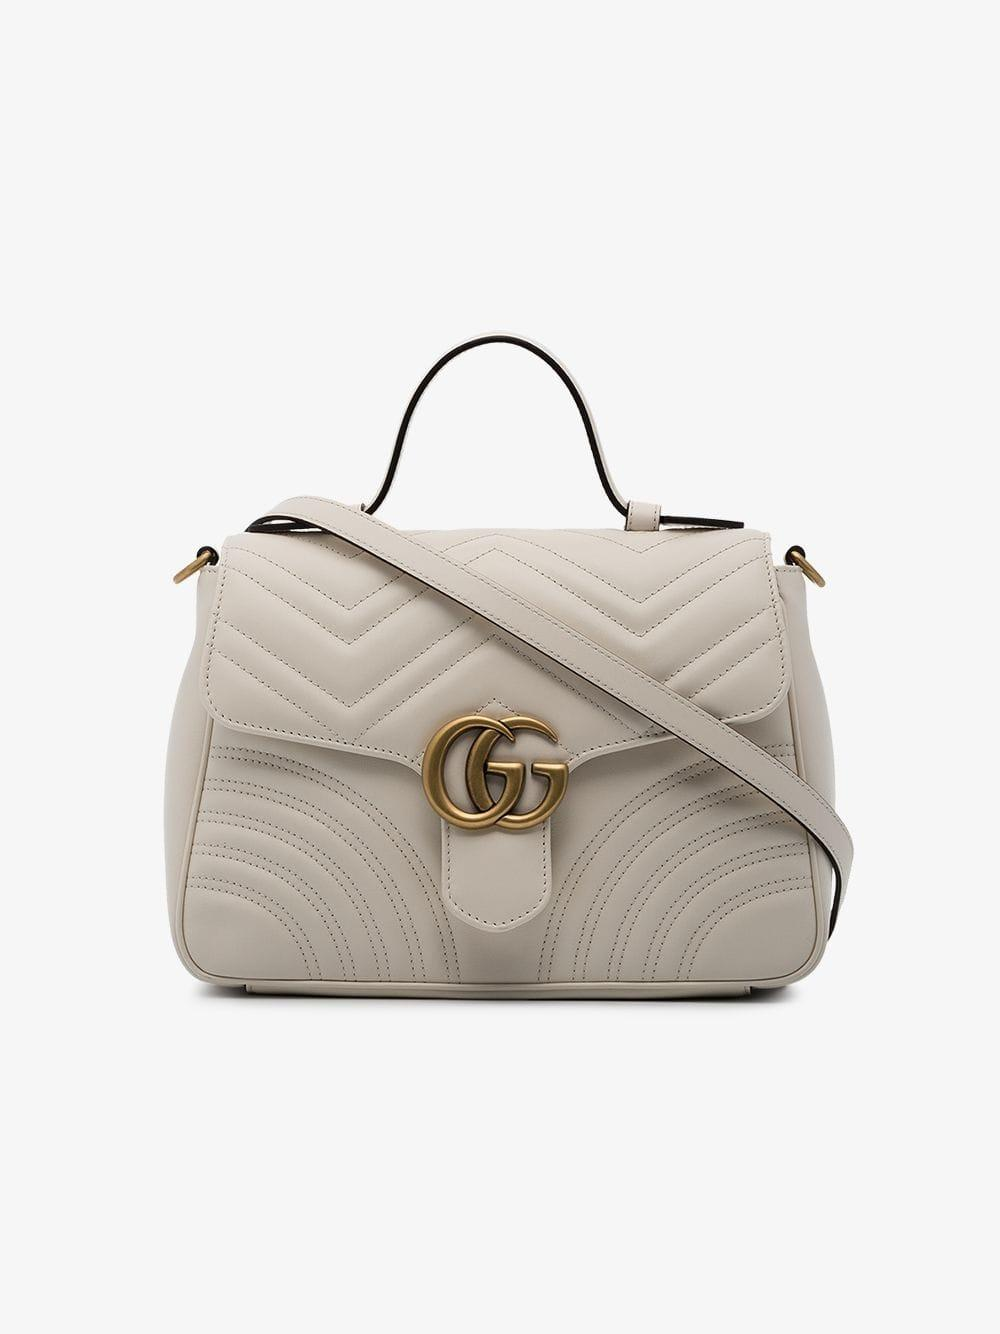 de5b3c05dfc4 Gucci Gg Marmont Small Top Handle Bag in White - Lyst